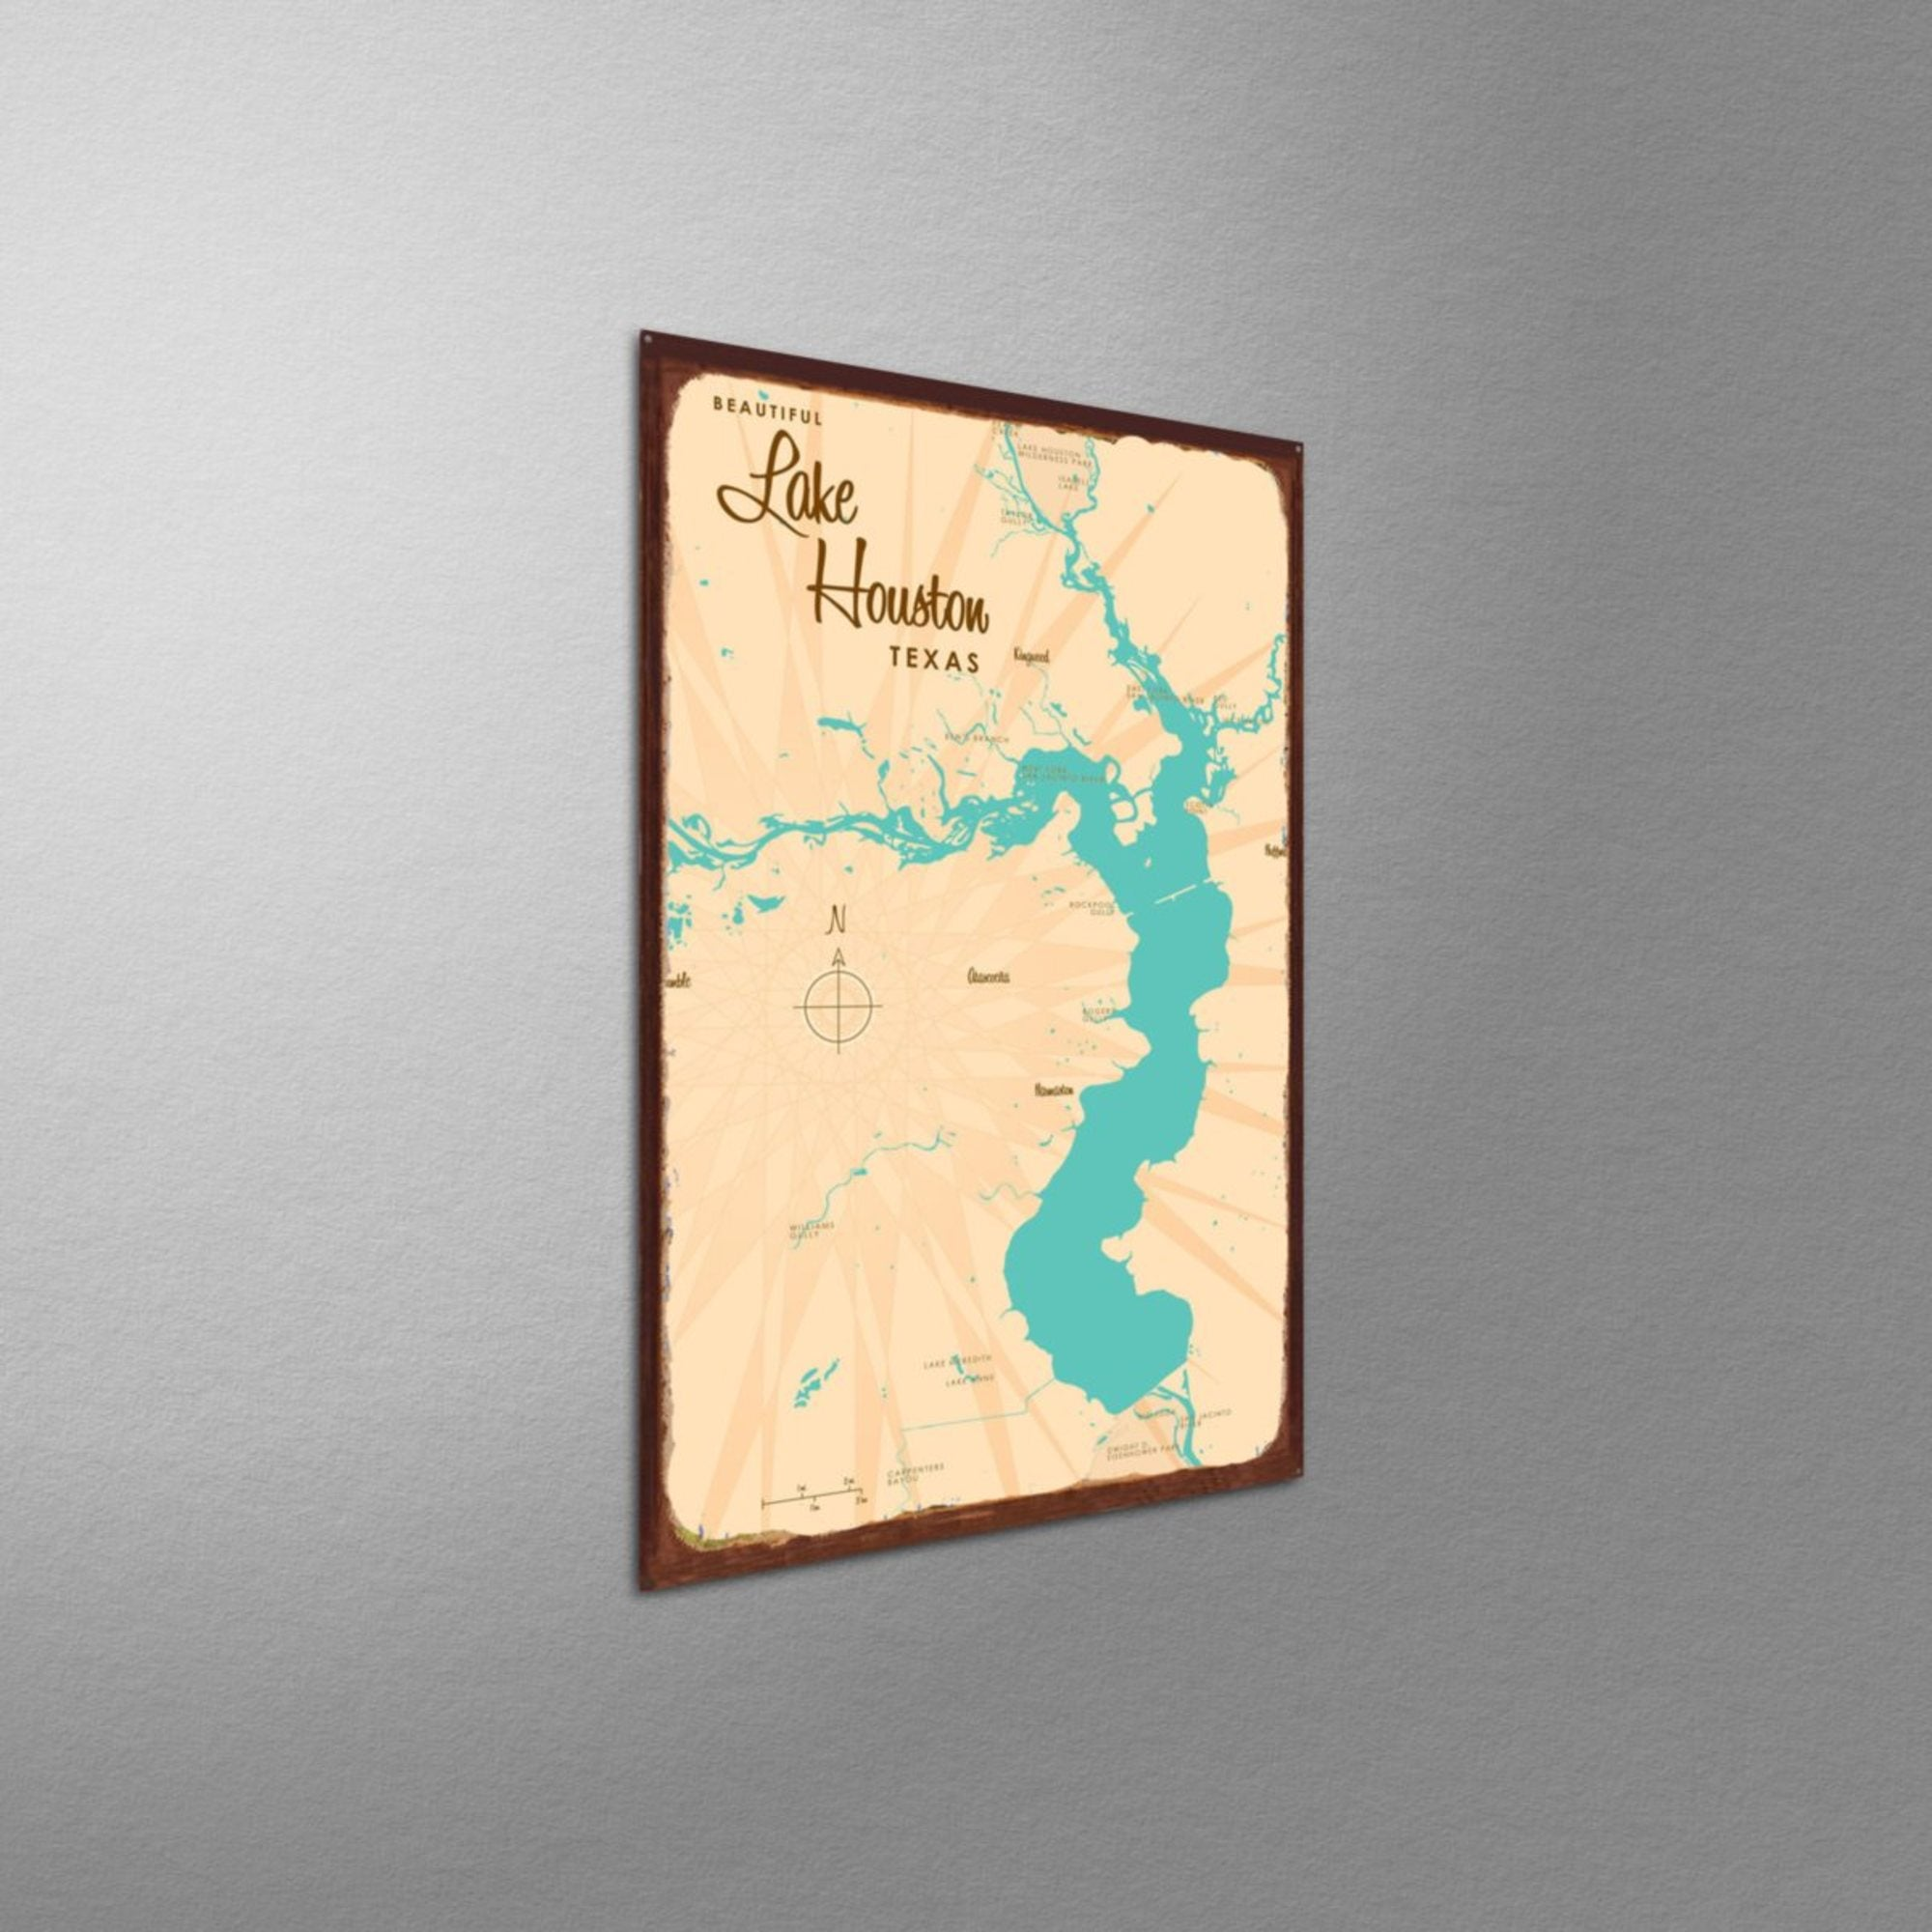 Lake Houston Texas, Rustic Metal Sign Map Art – Lakebound